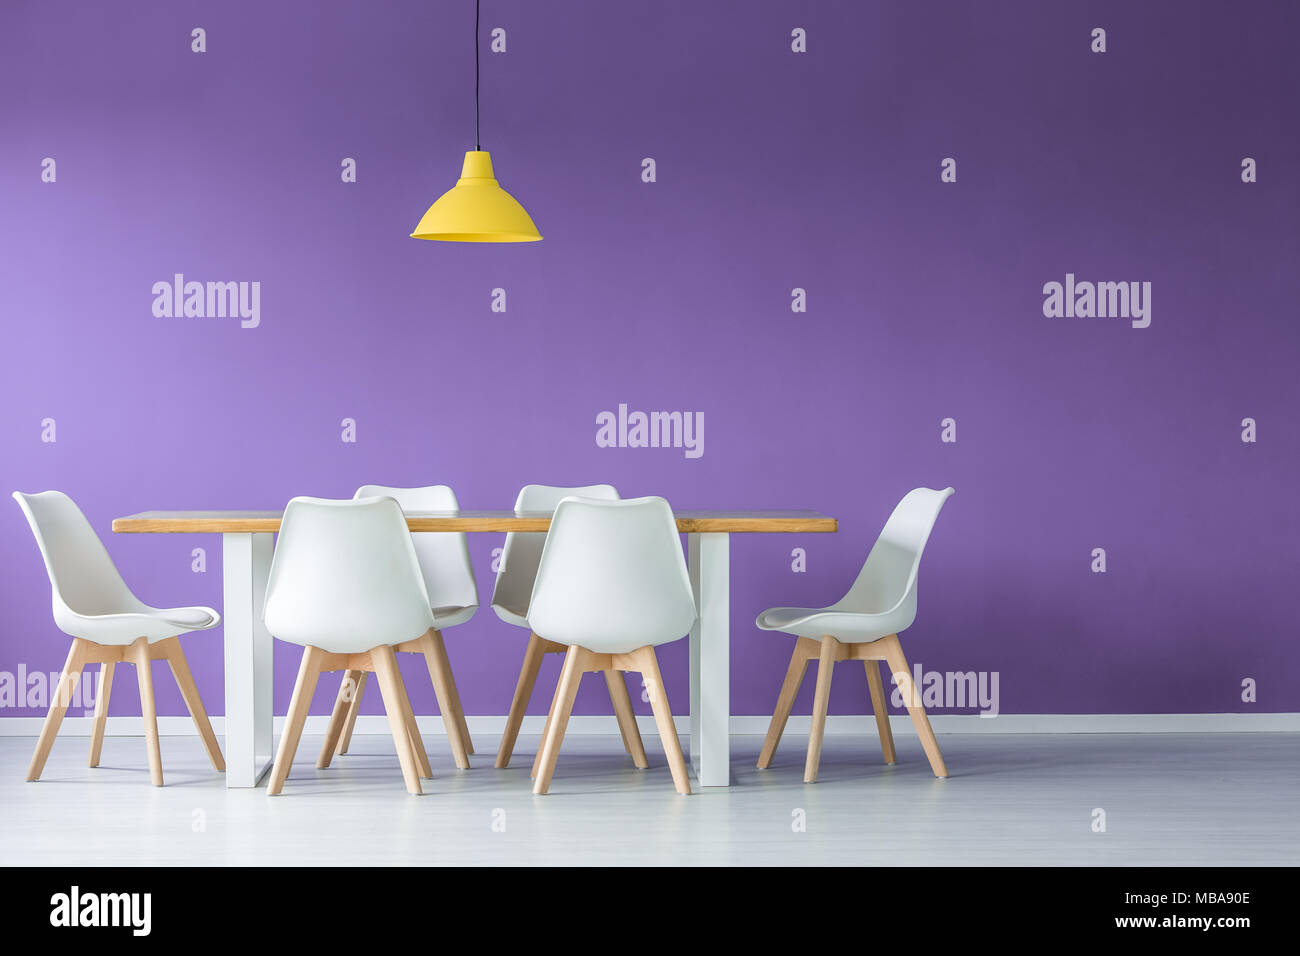 Minimal modern open space interior with white and wooden chairs around a dining table and yellow lamp against purple wall - Stock Image